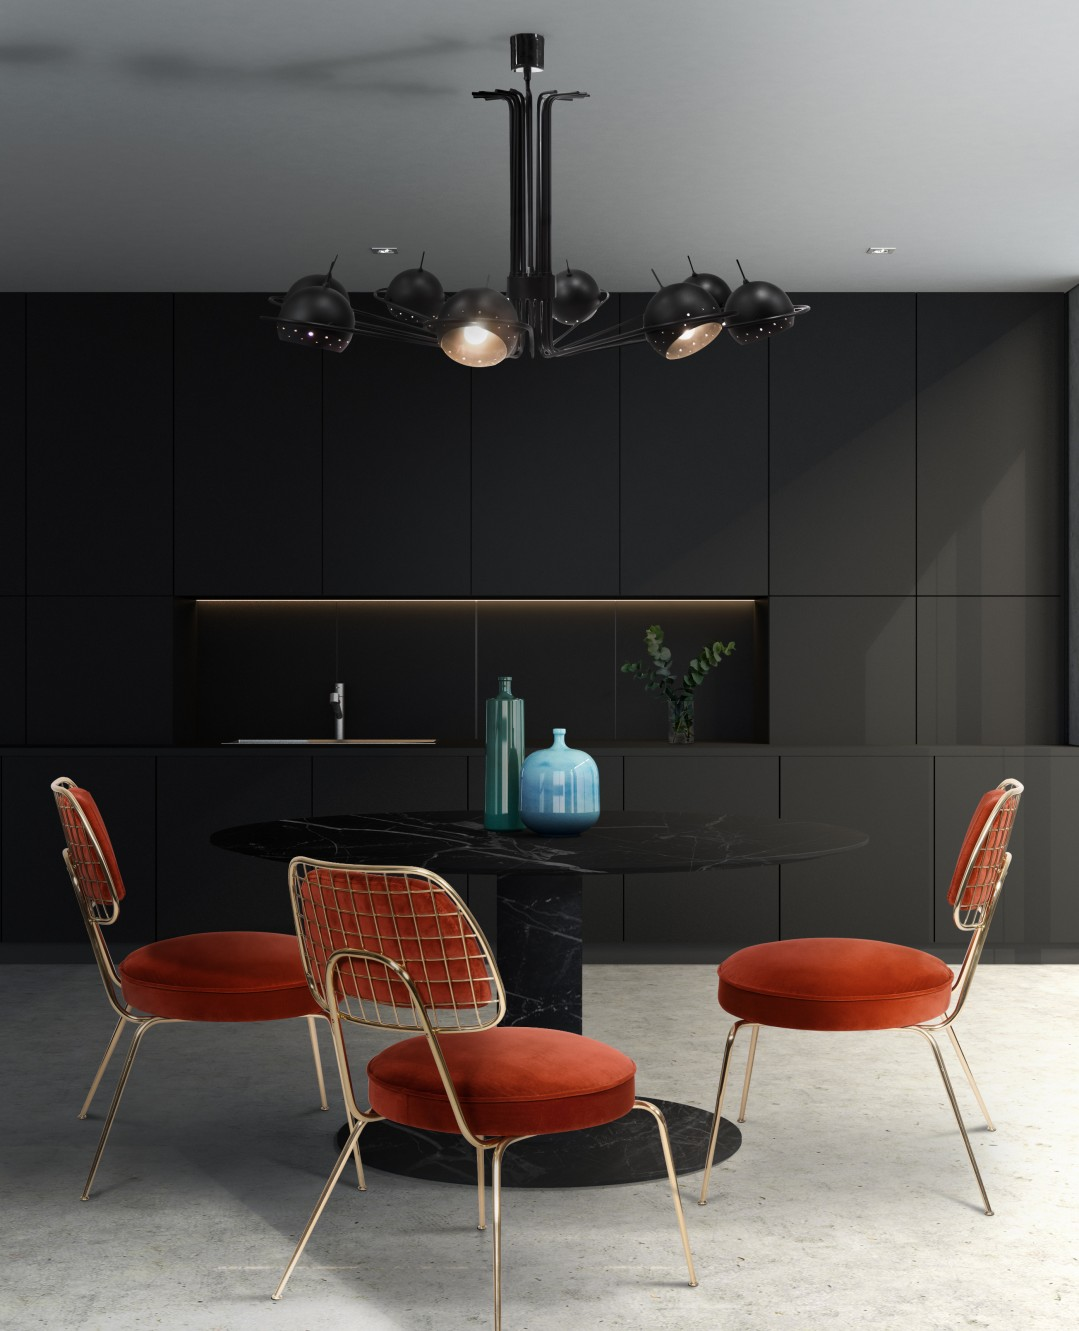 Shop The Look Orange Is The New Black Dining Room 1